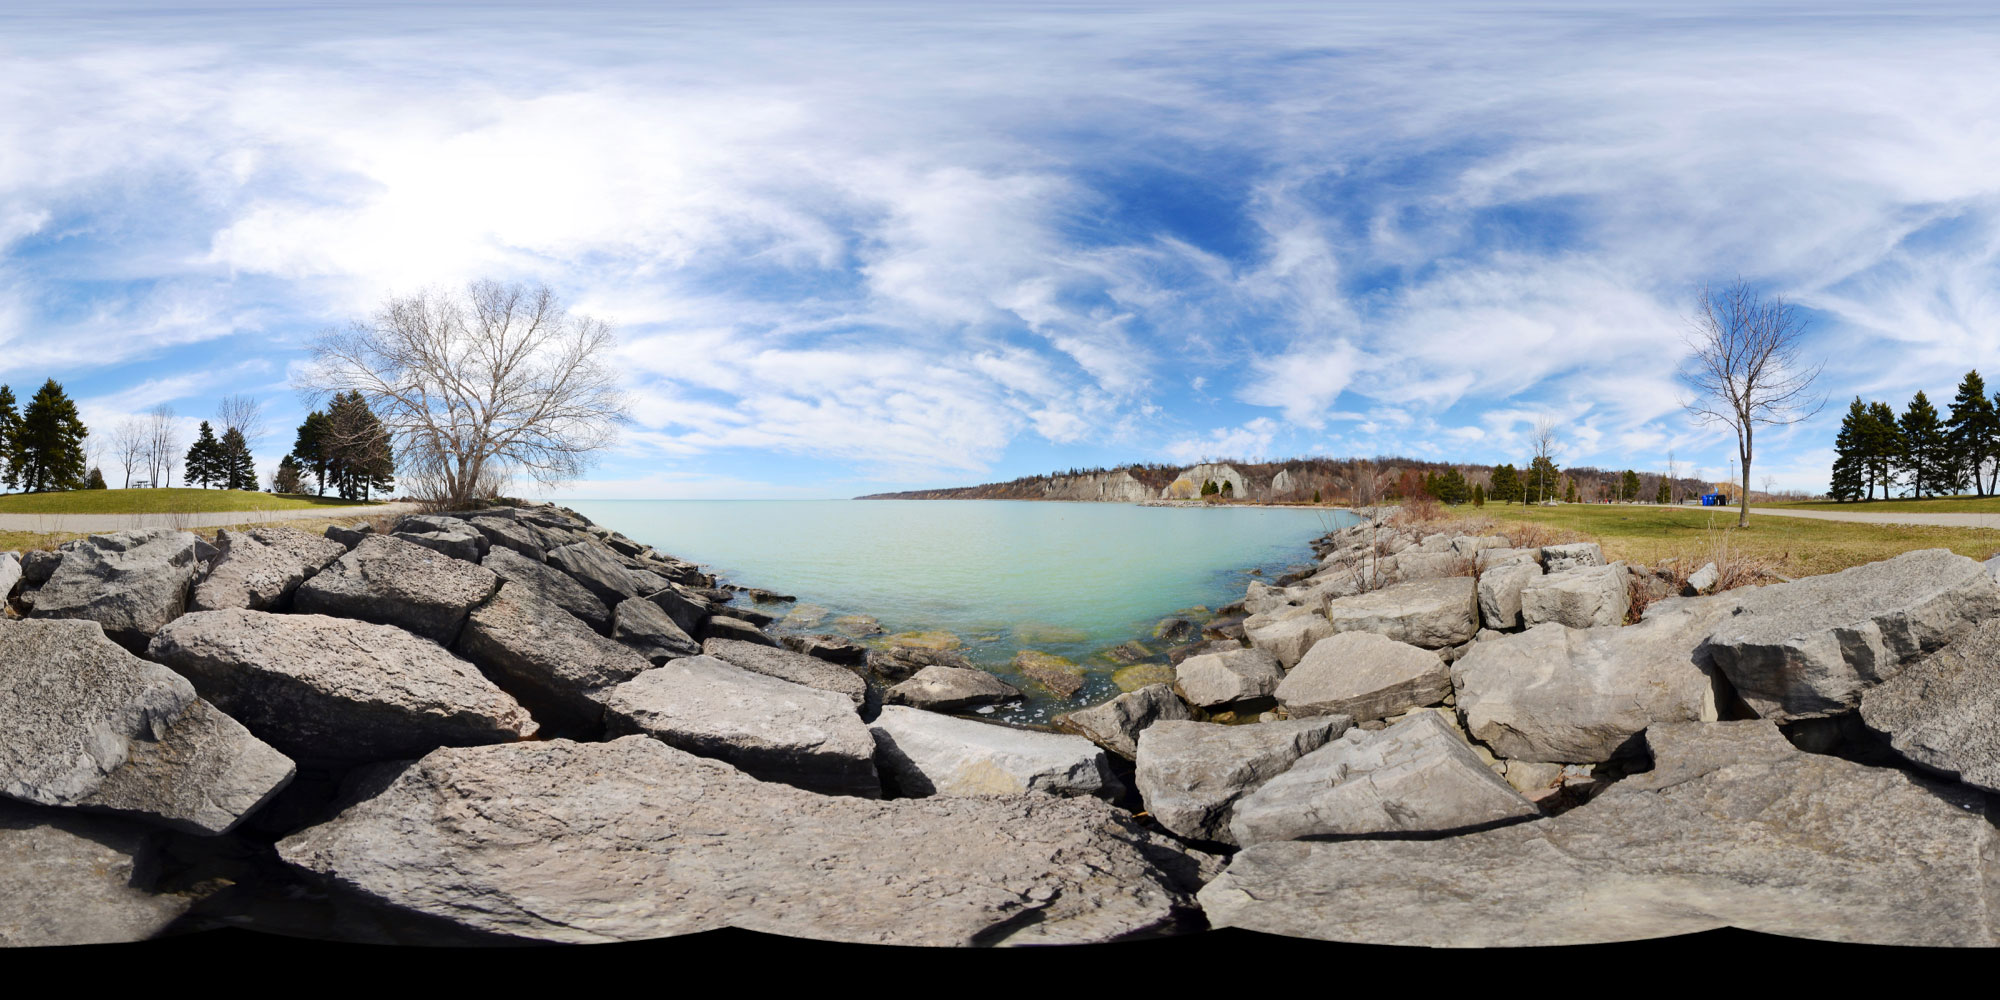 360 Photography 101: How To Get Started